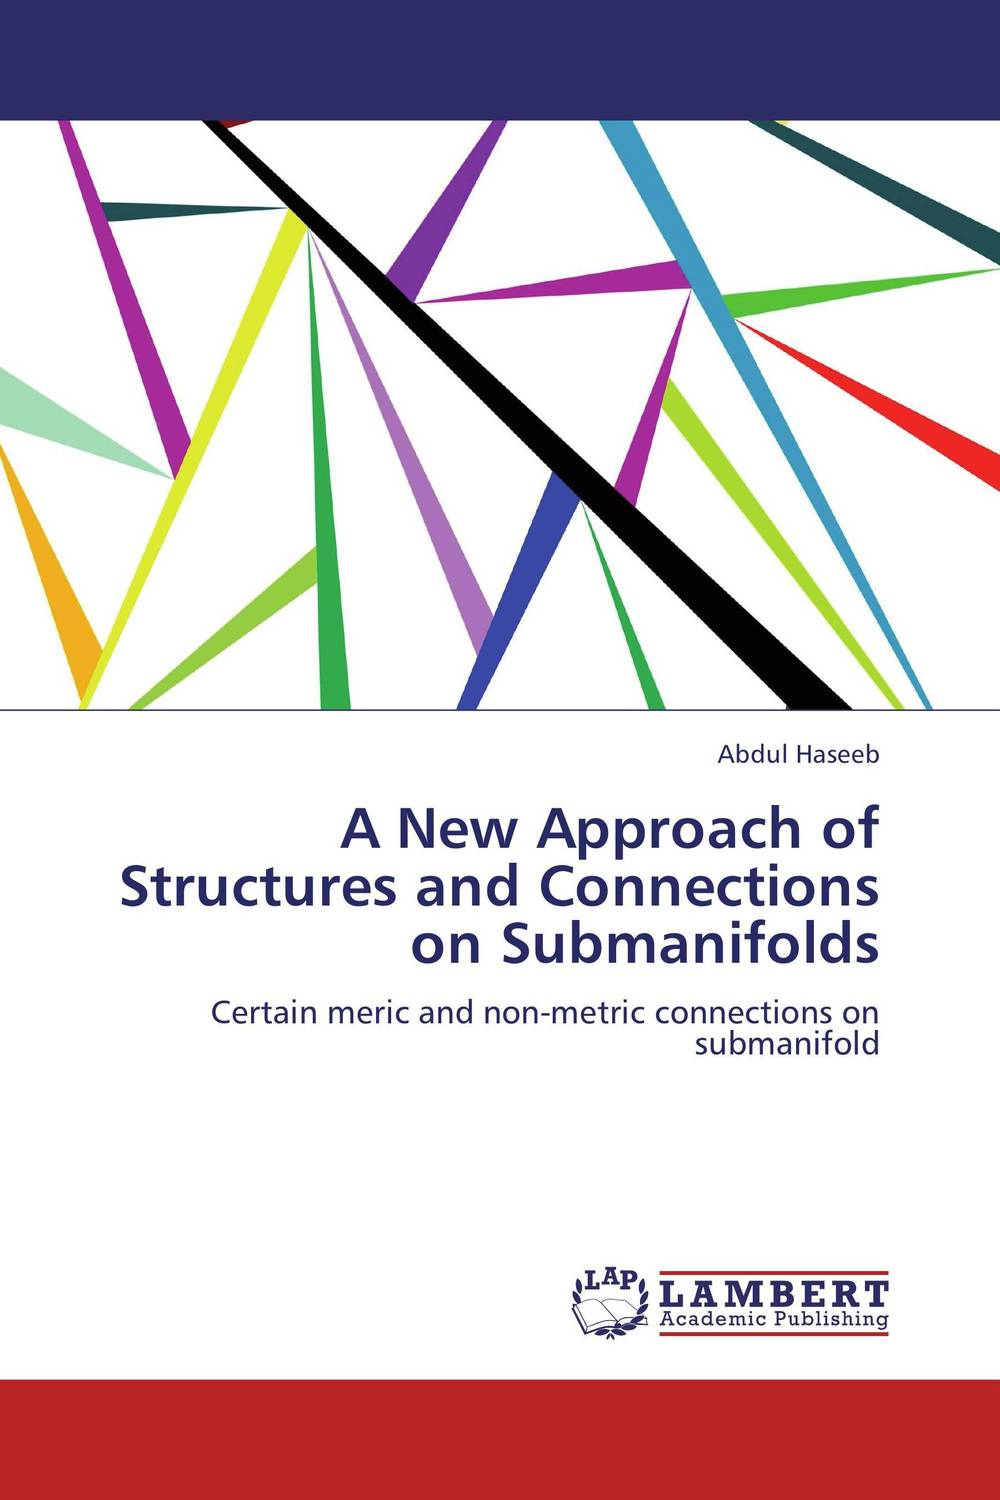 купить A New Approach of Structures and Connections on Submanifolds недорого